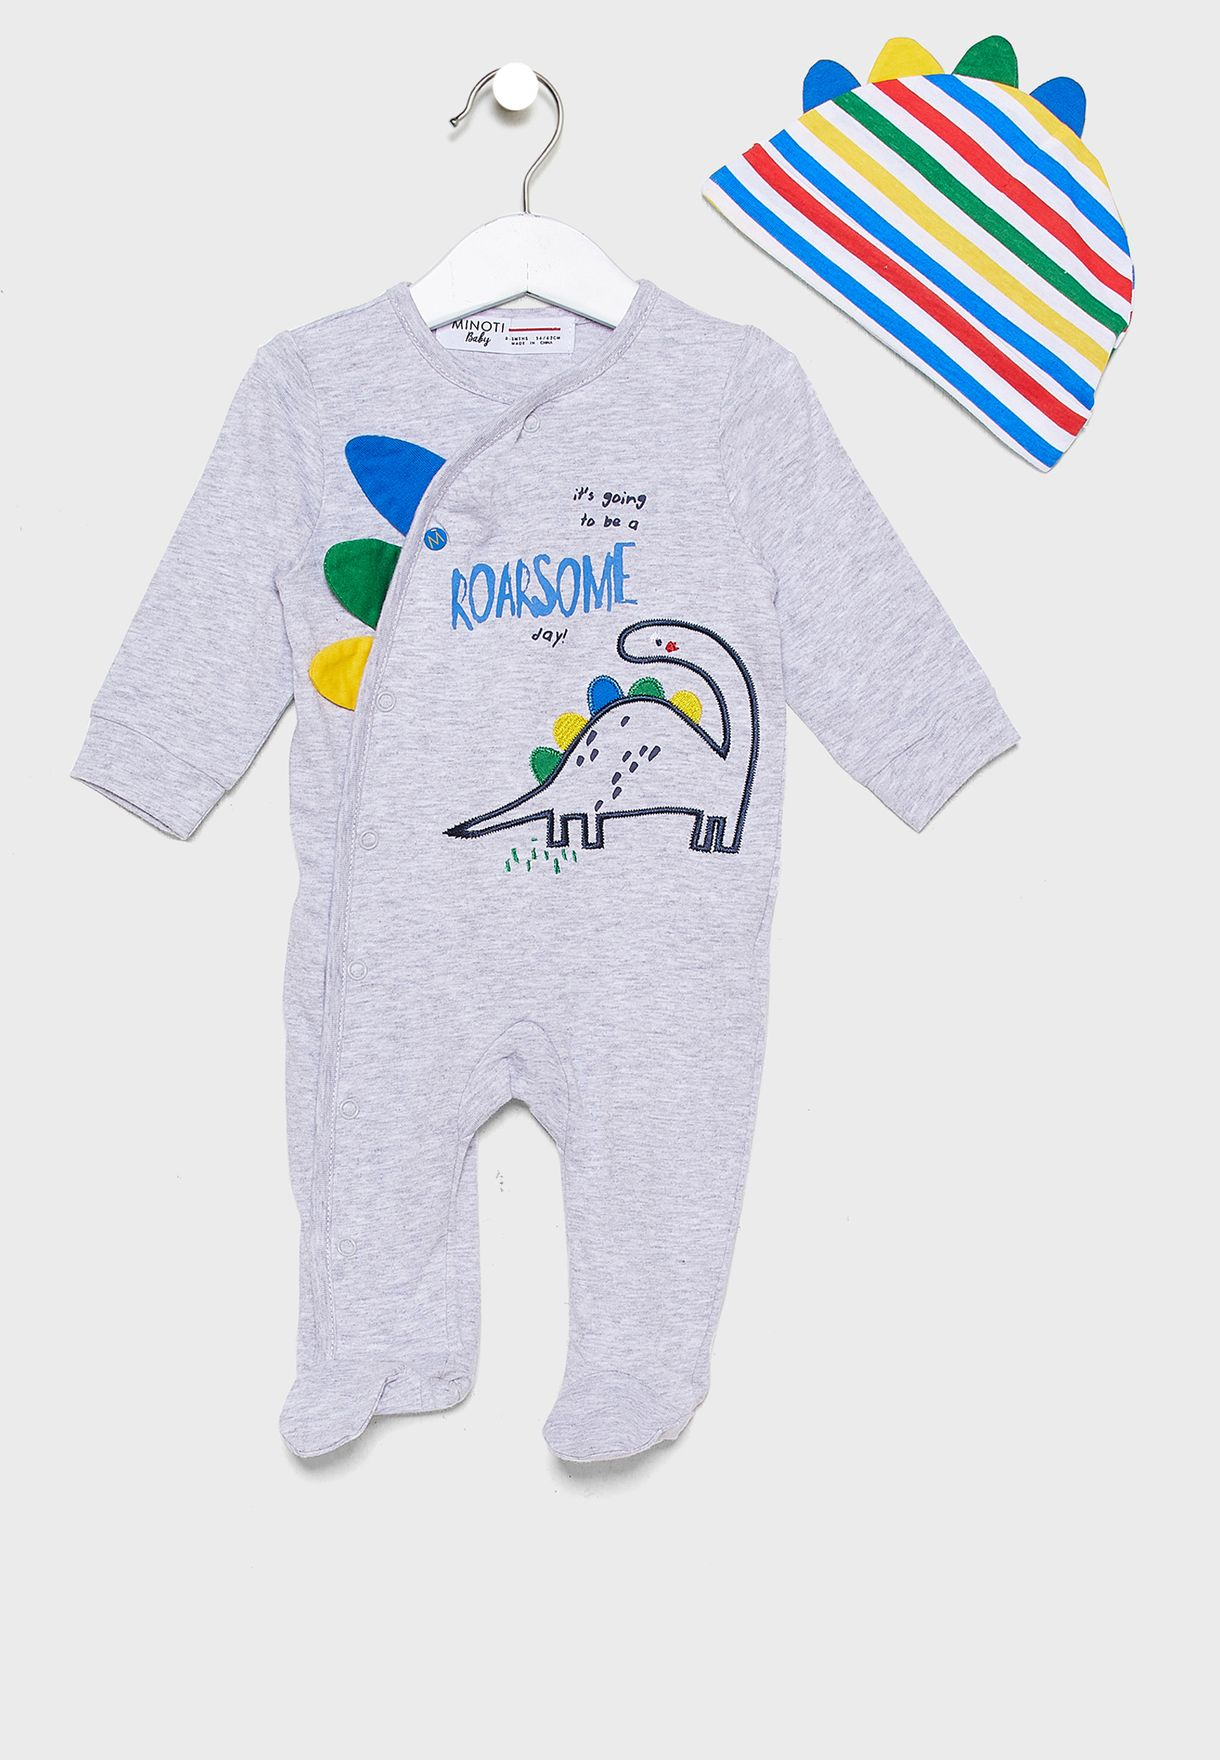 Infant Dinosaur Print Romper+Cap Set